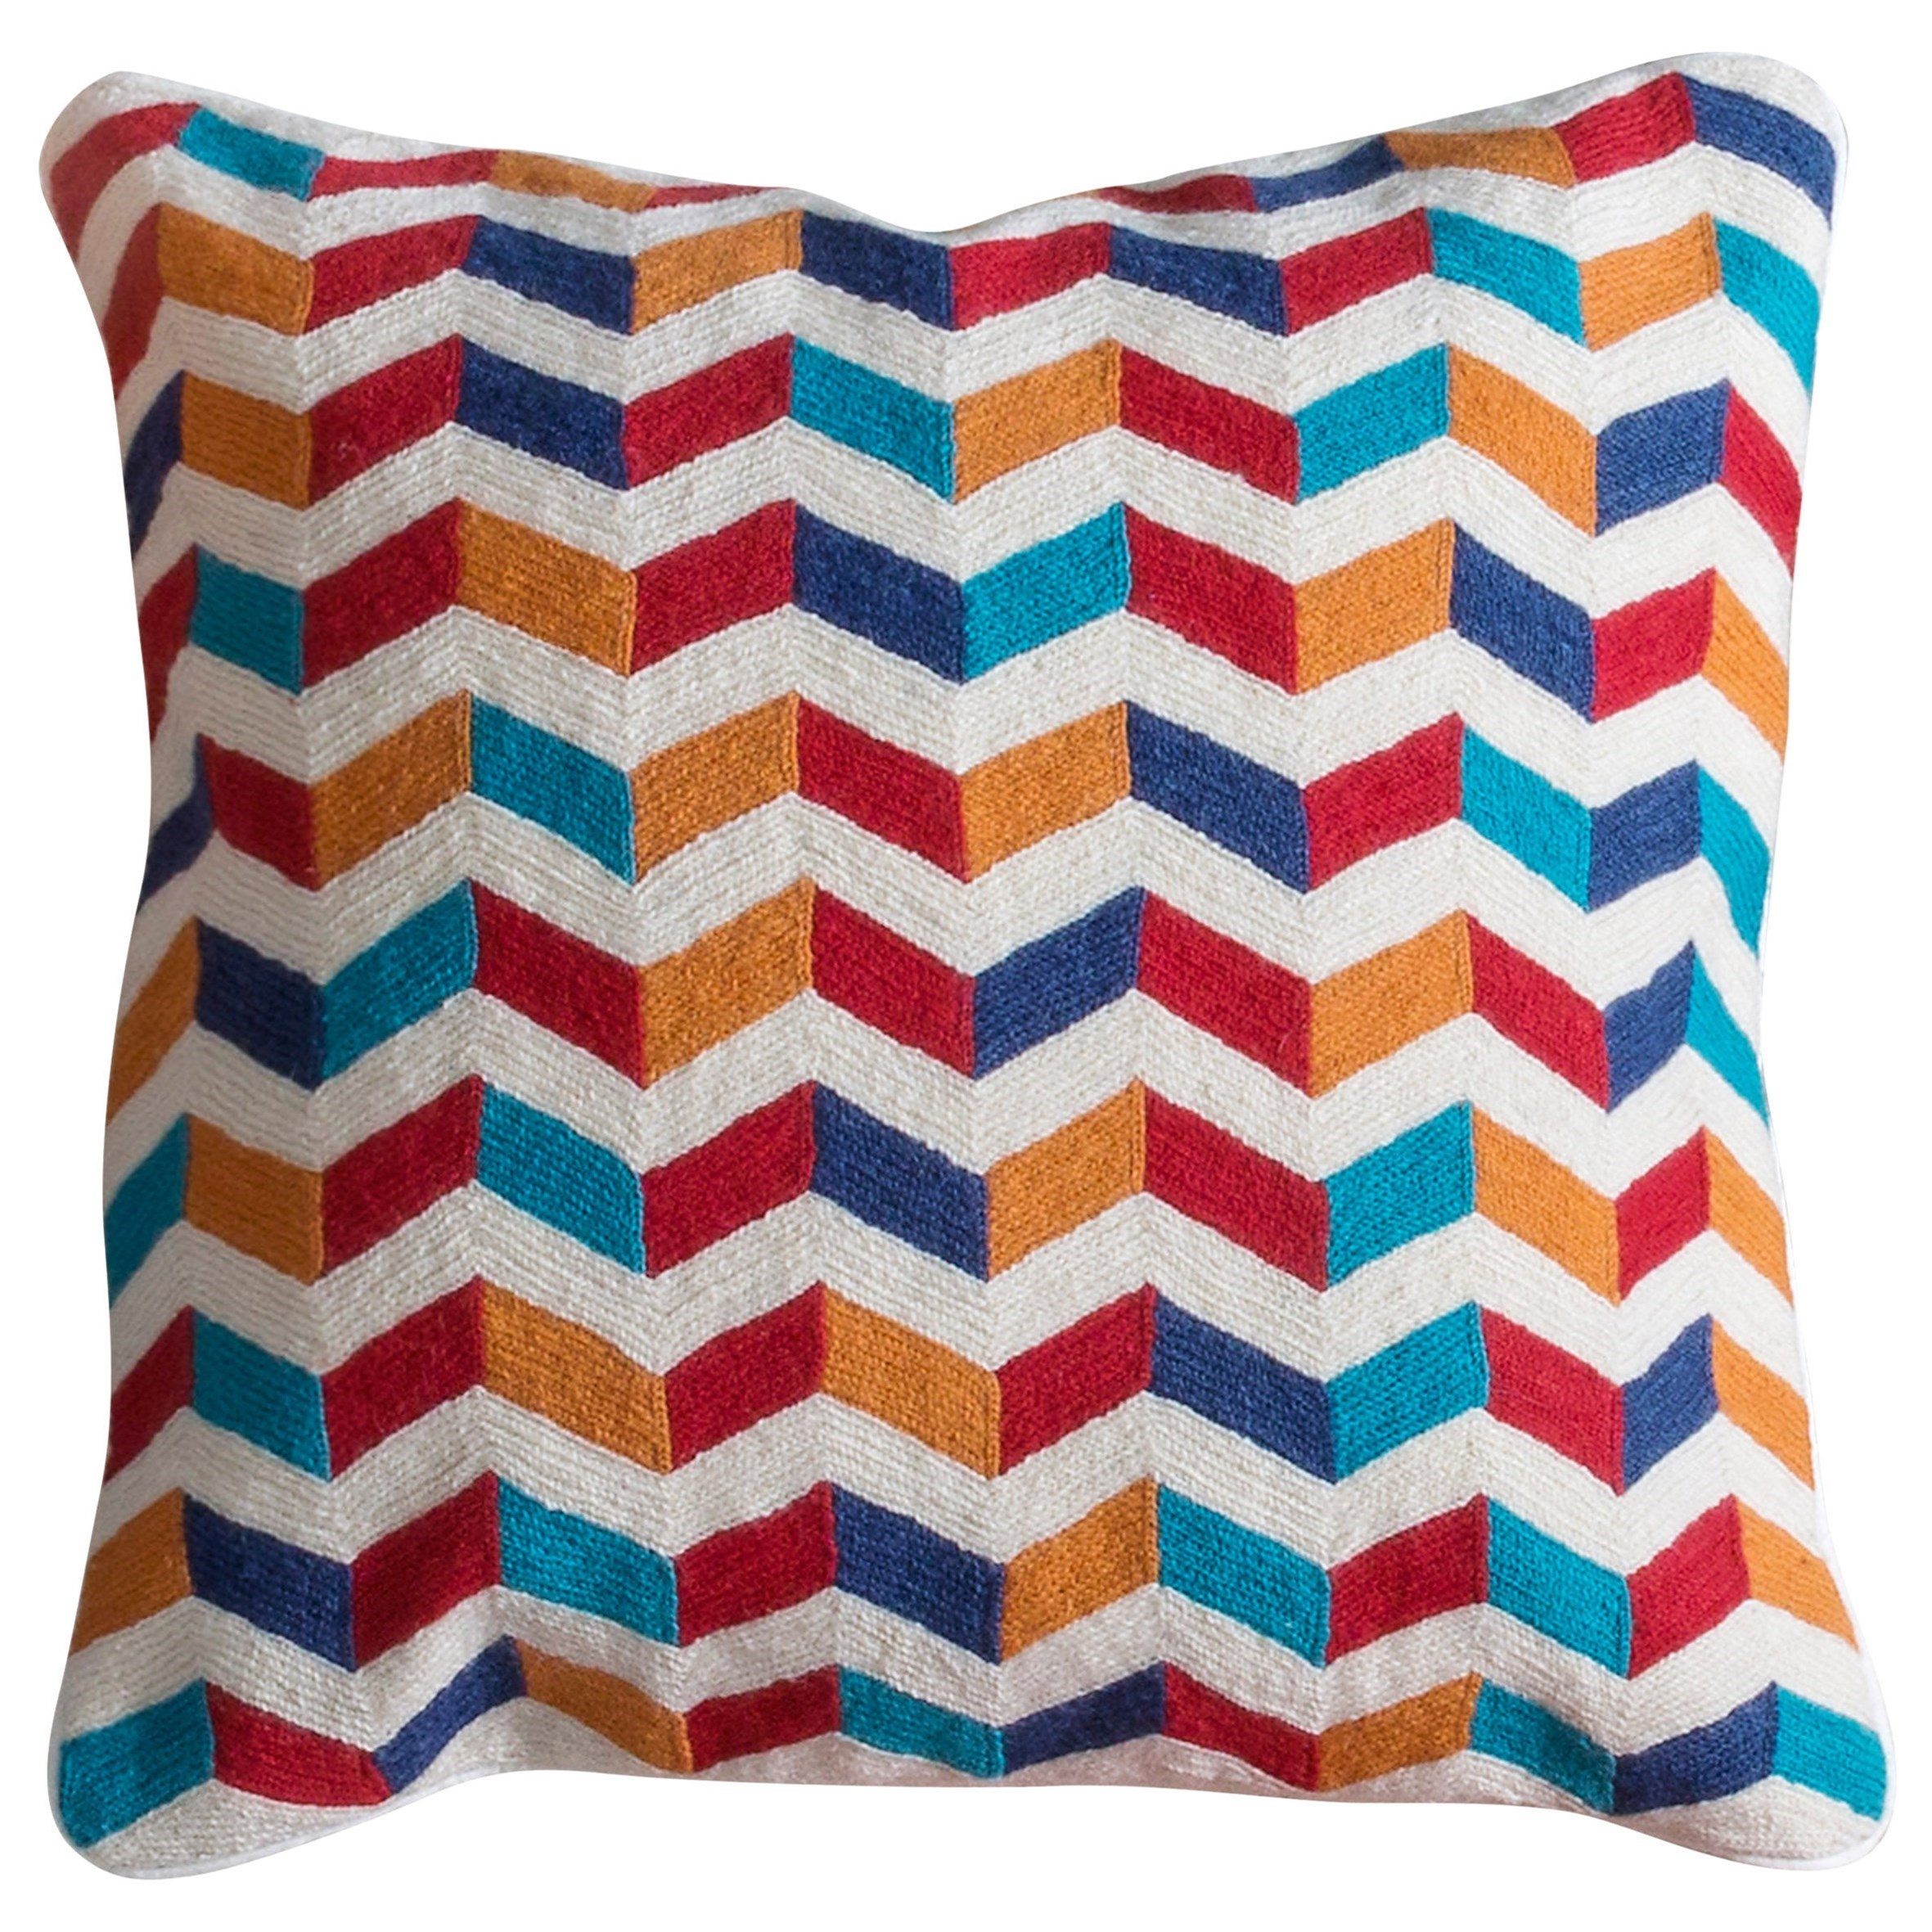 Accessories Multi-Colored Accent Pillow by StyleCraft at Alison Craig Home Furnishings